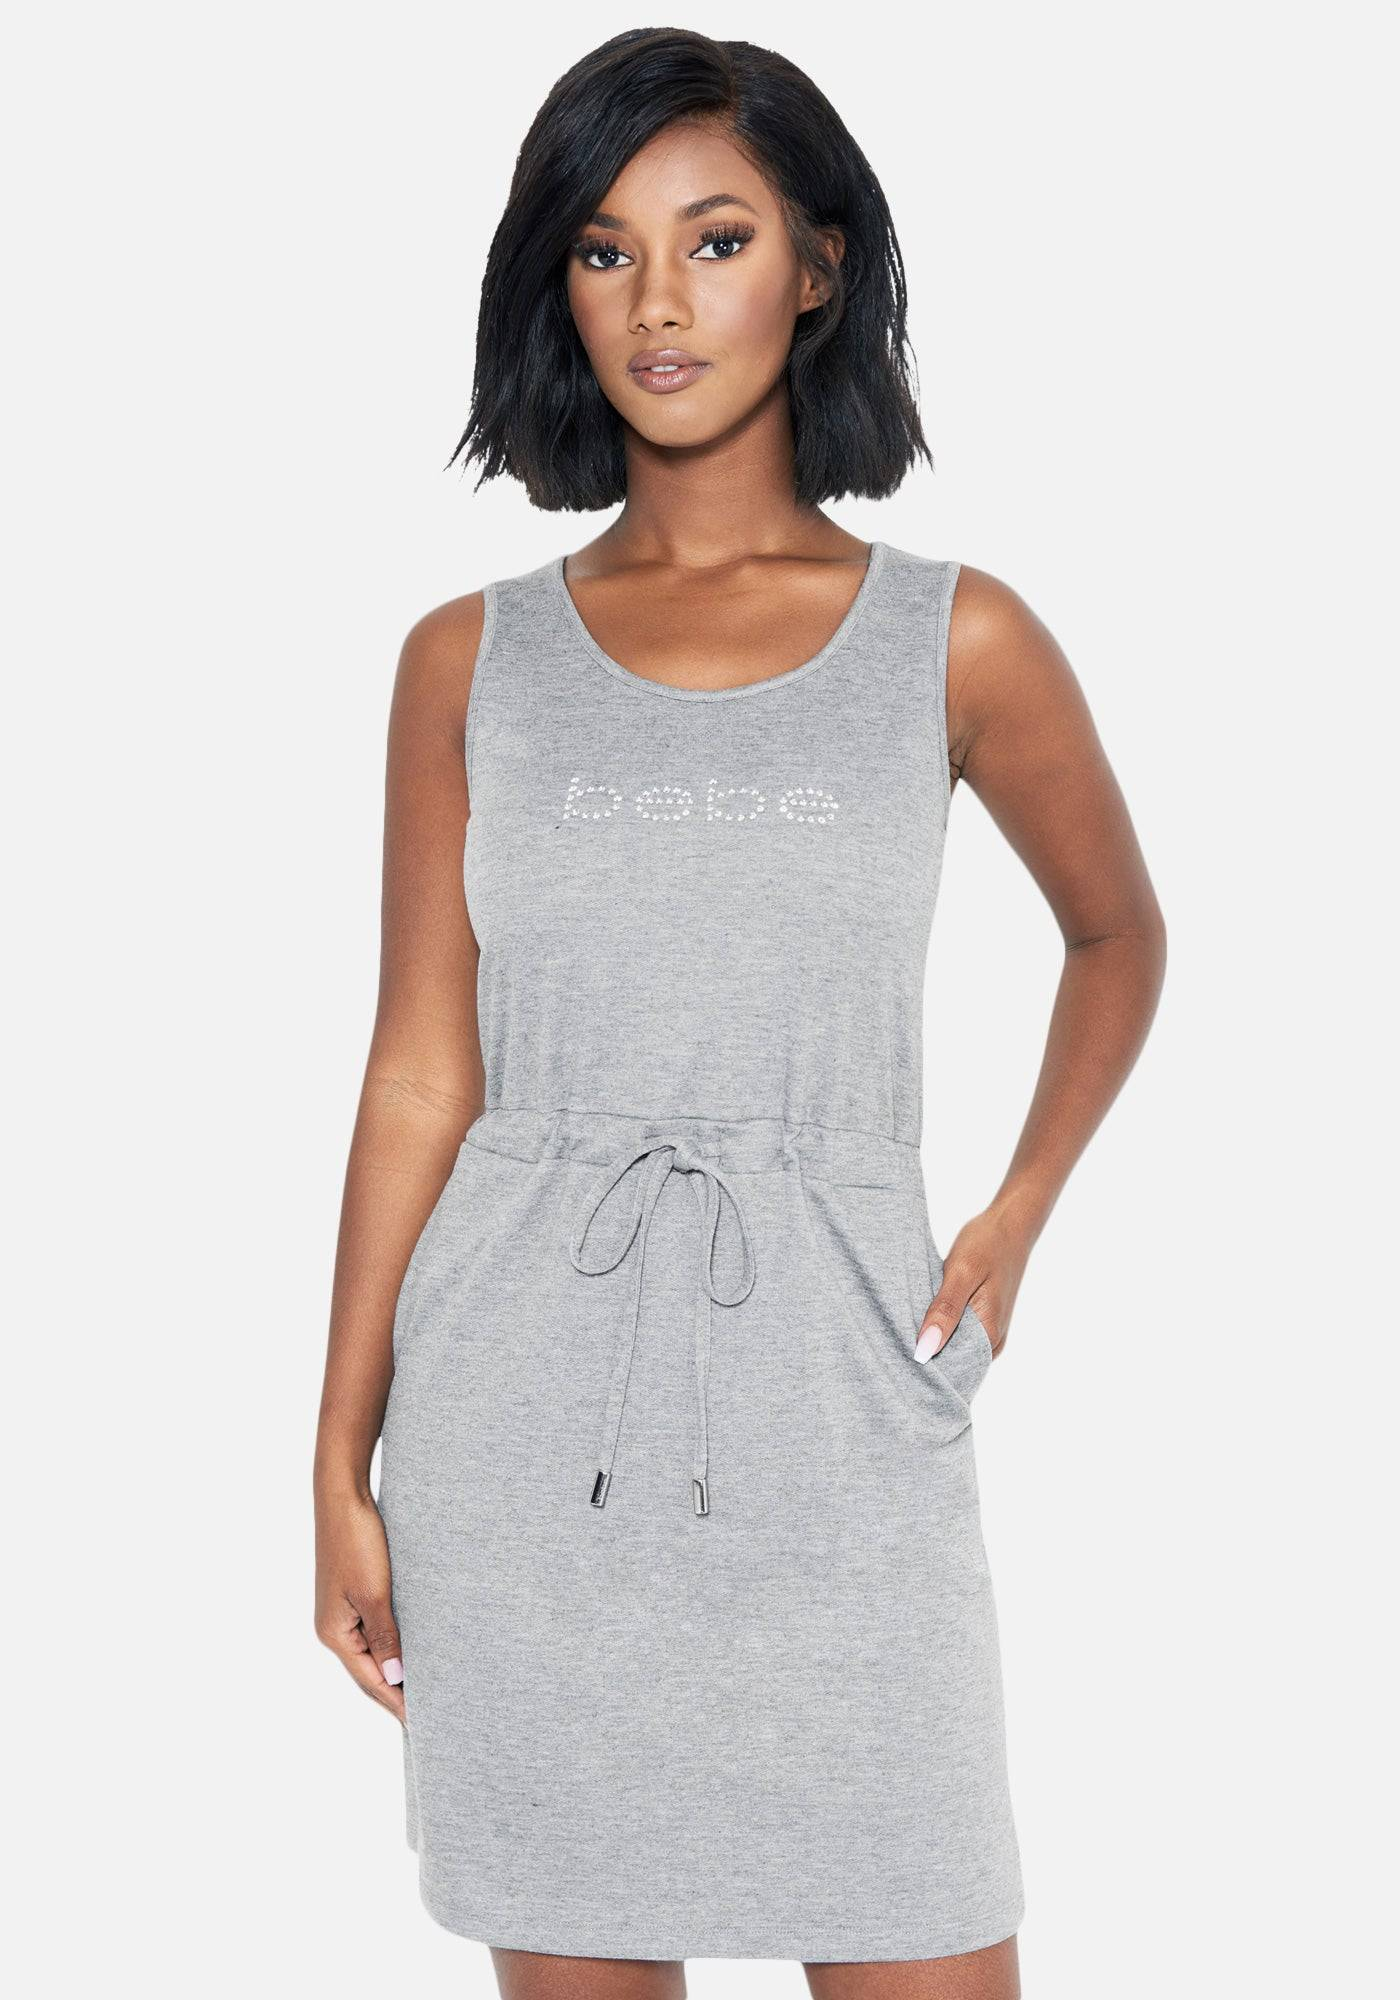 Bebe Women's French Terry Tank Dress, Size Small in Heather Grey Spandex